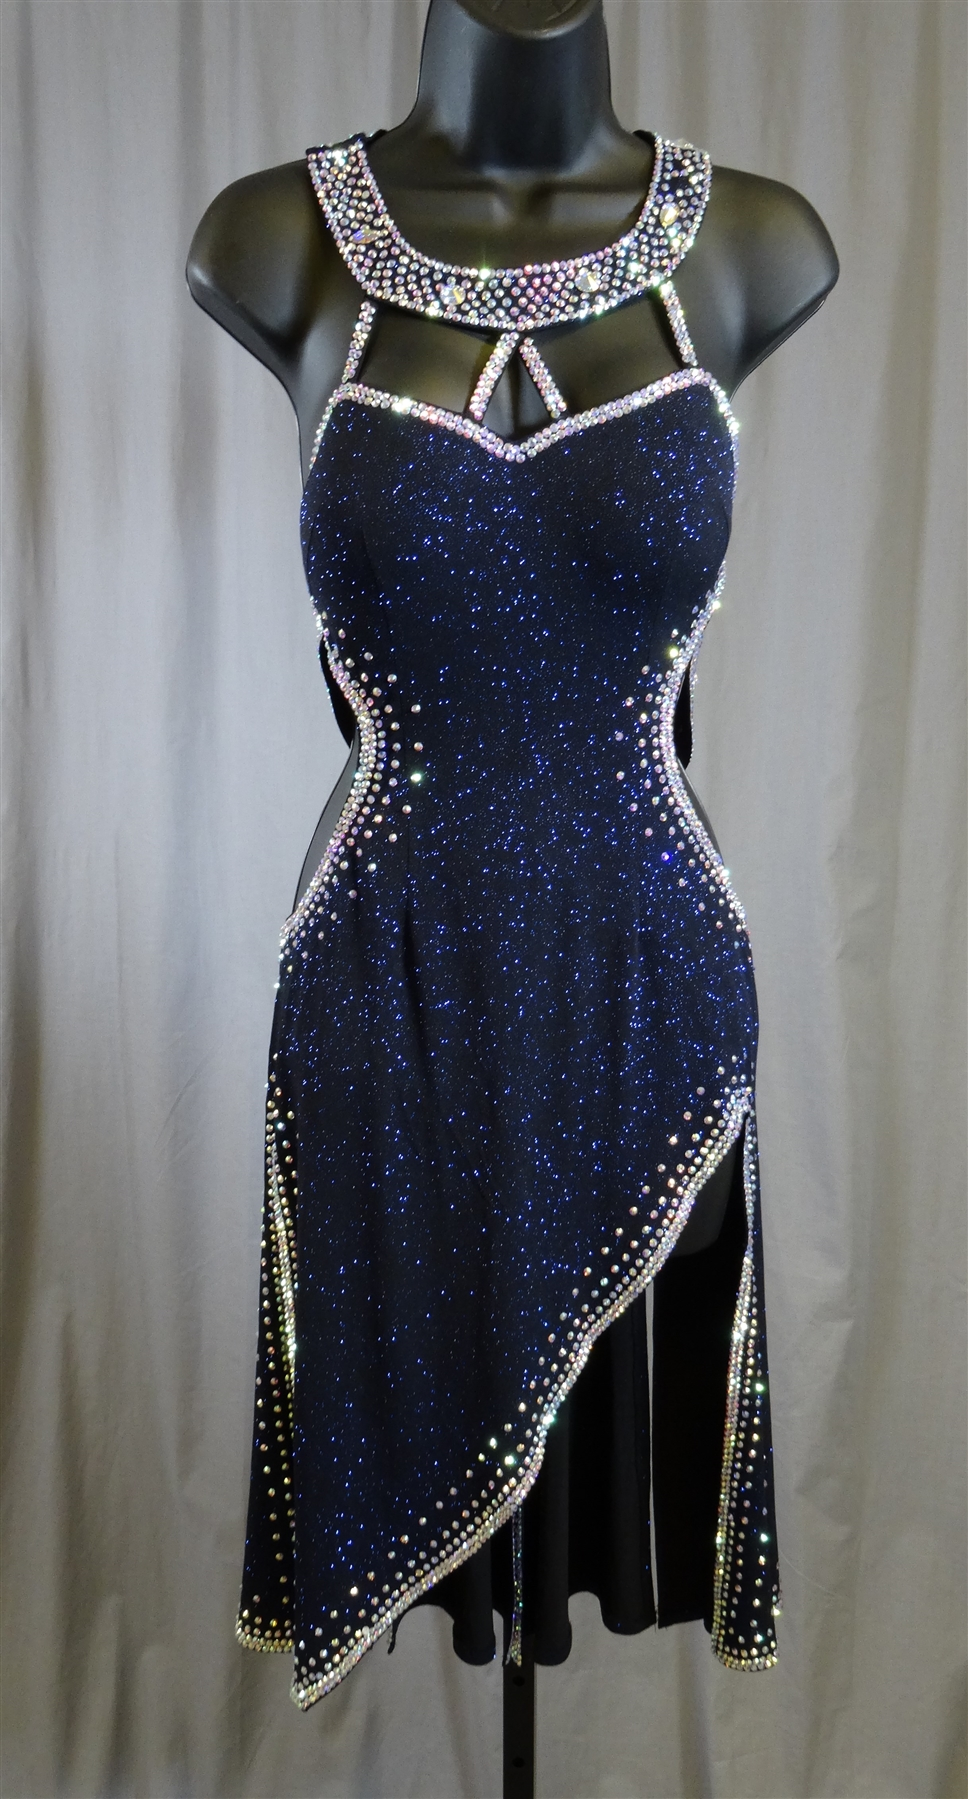 Blue Sequin Dress What Shoes To Wear